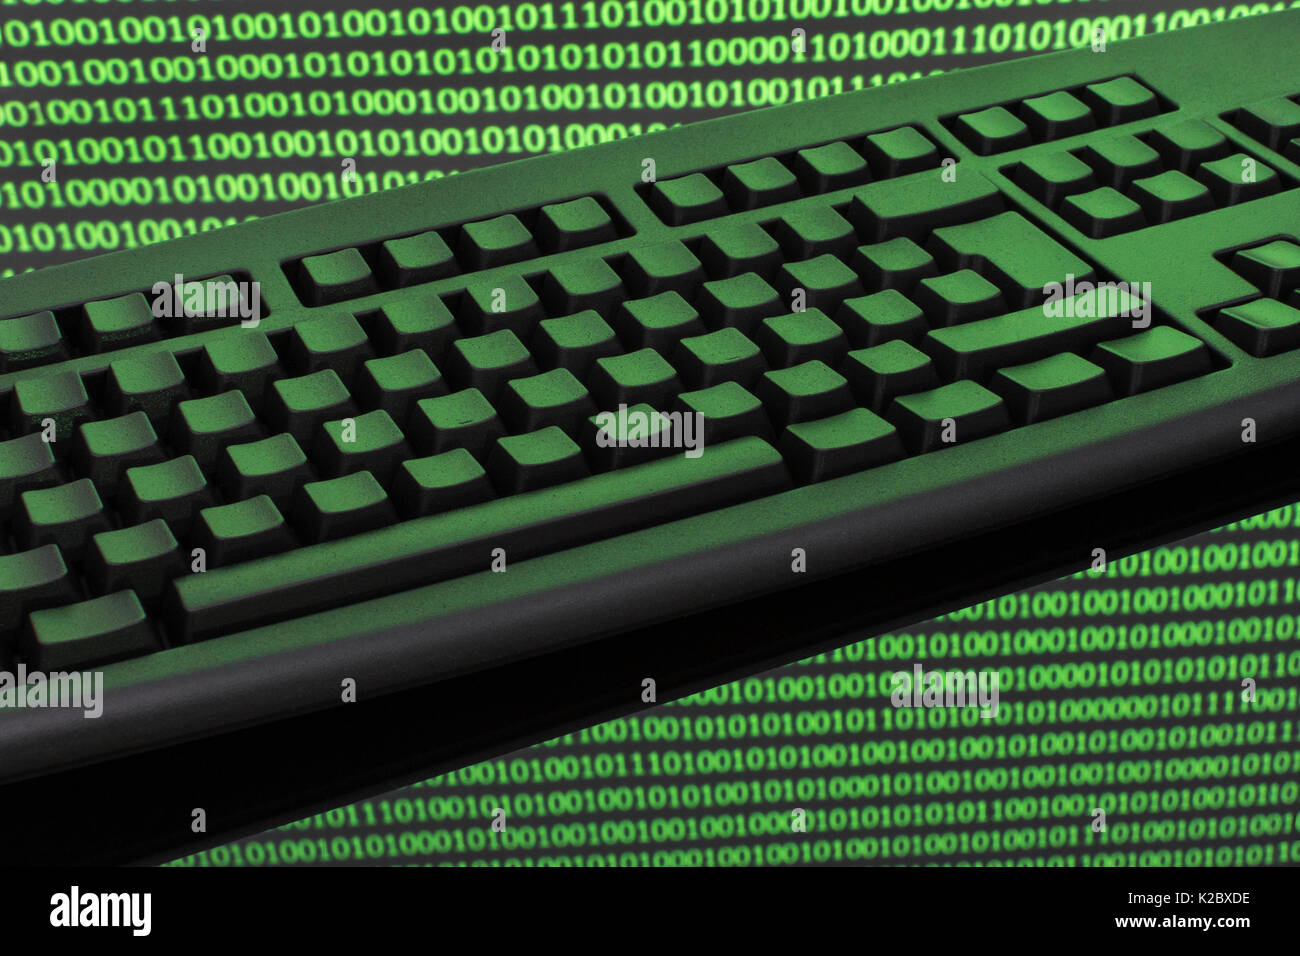 Black keyboard + binary code - for online transactions